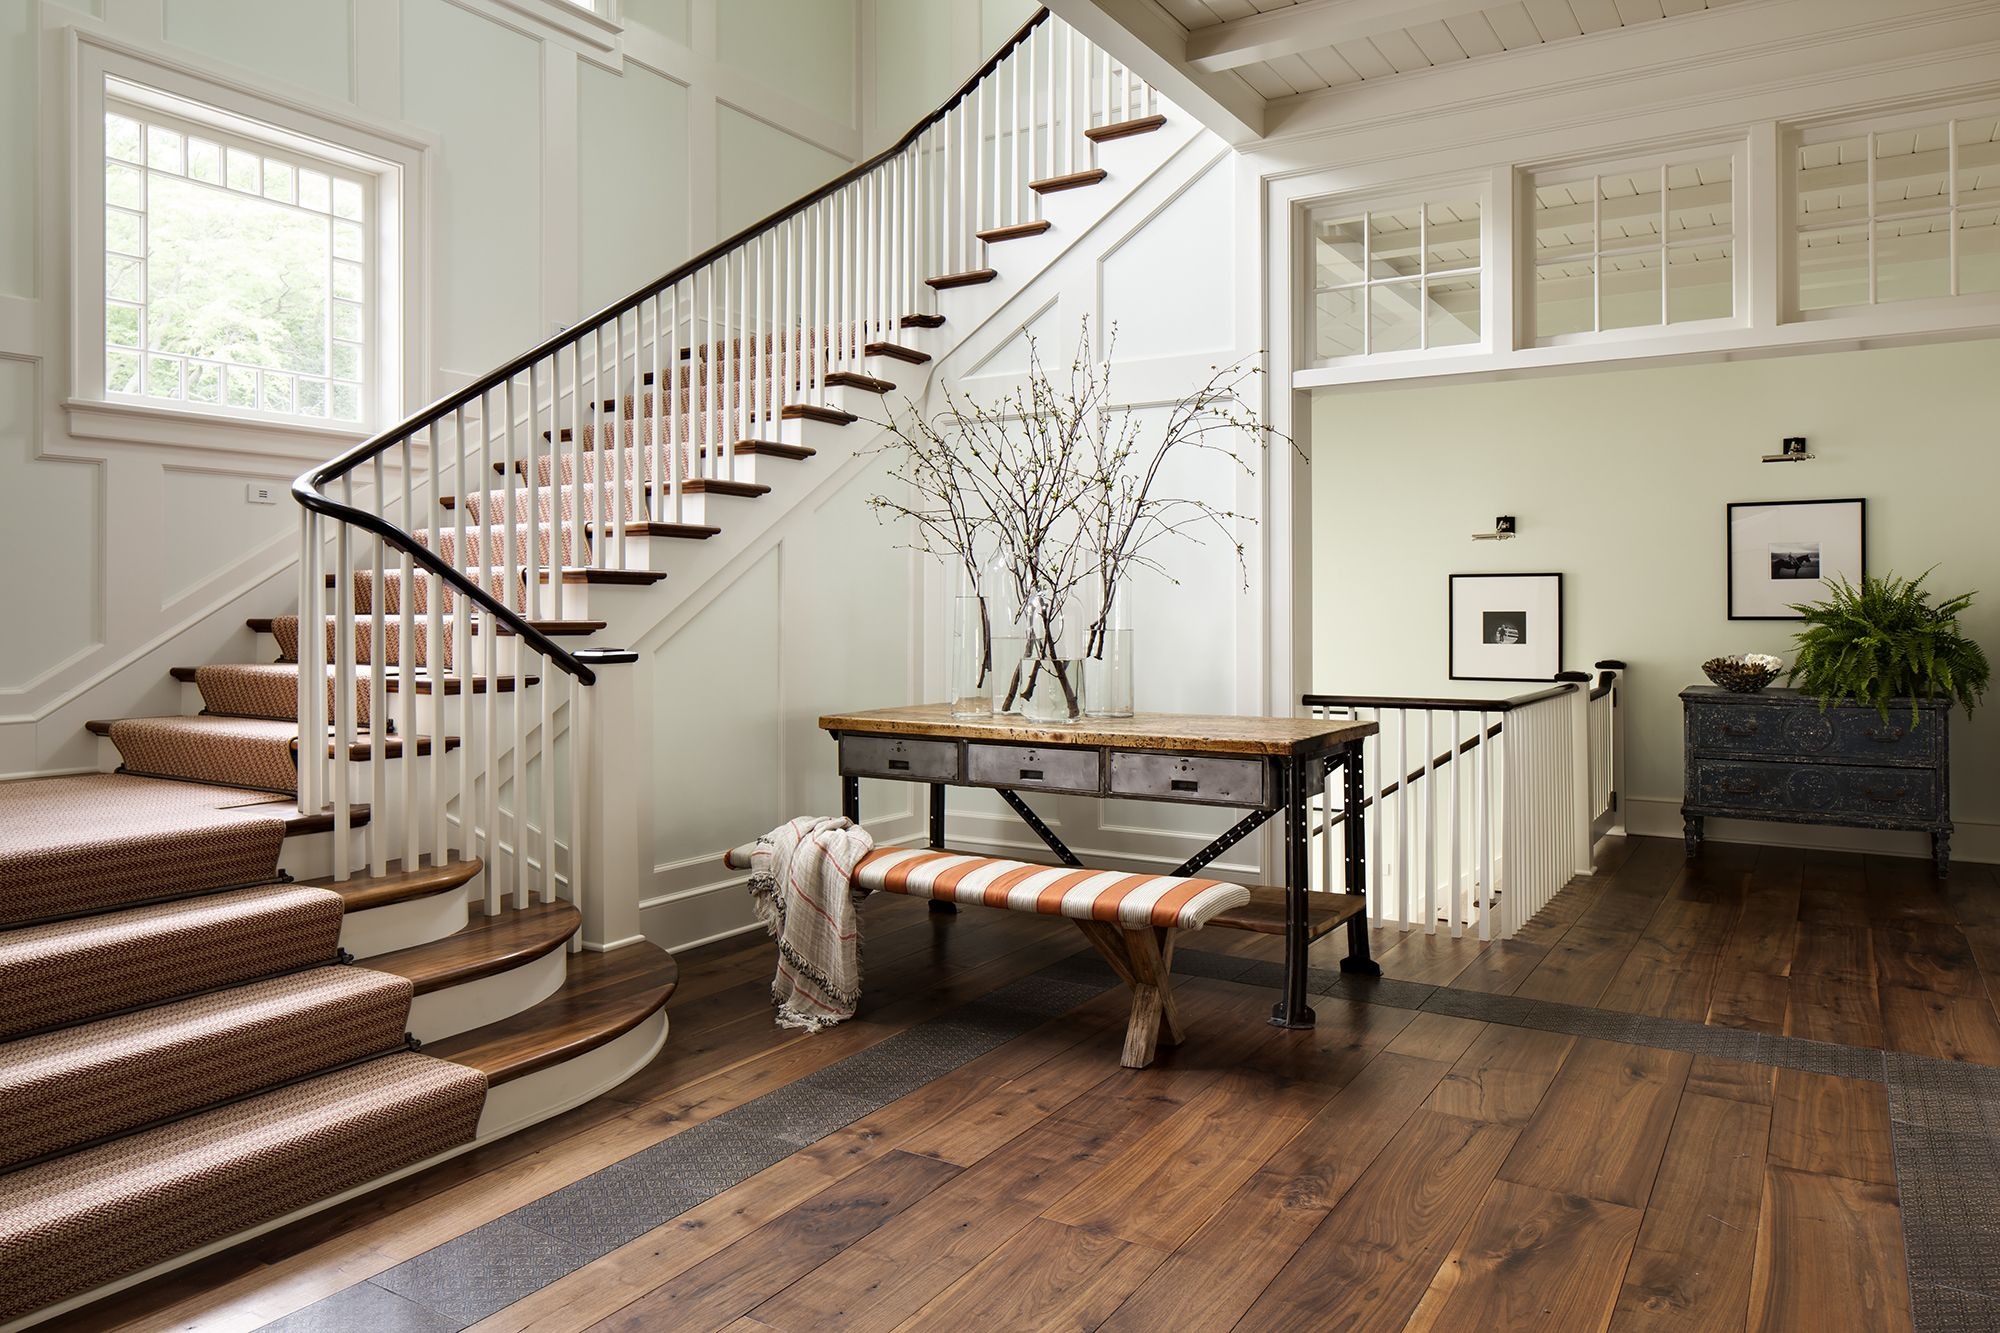 David Bader. A grand staircase entry & 27 Stylish Staircase Decorating Ideas - Staircase Wall Decor